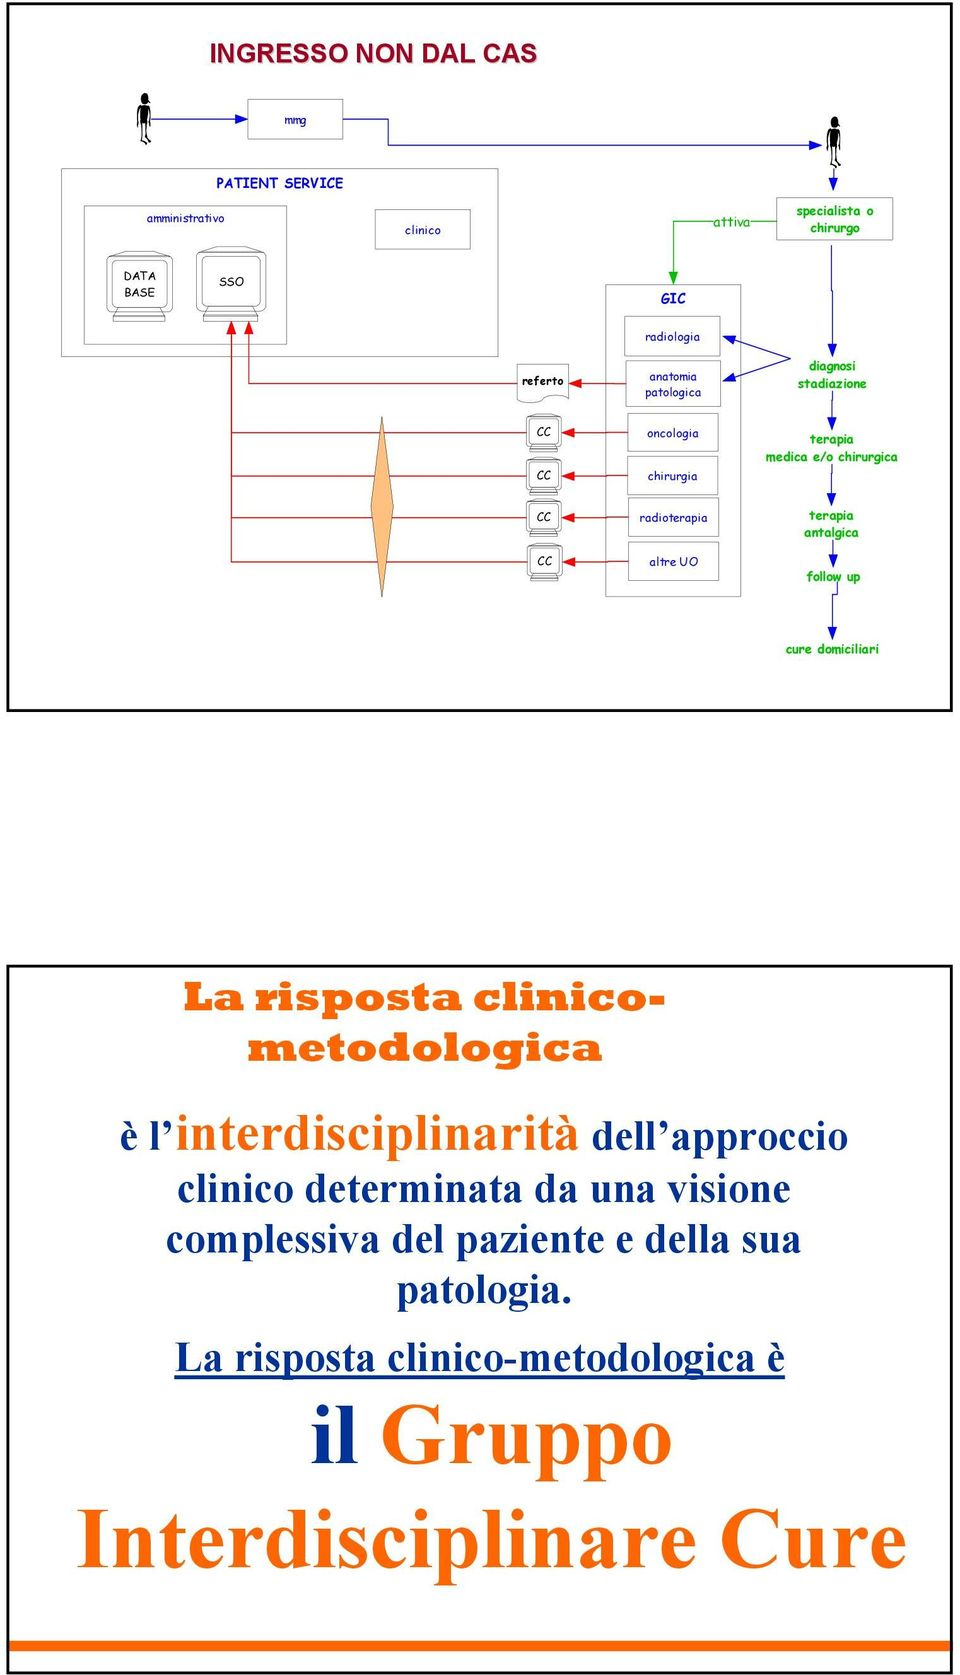 terapia antalgica follow up cure domiciliari La risposta clinicometodologica èl interdisciplinarità dell approccio clinico